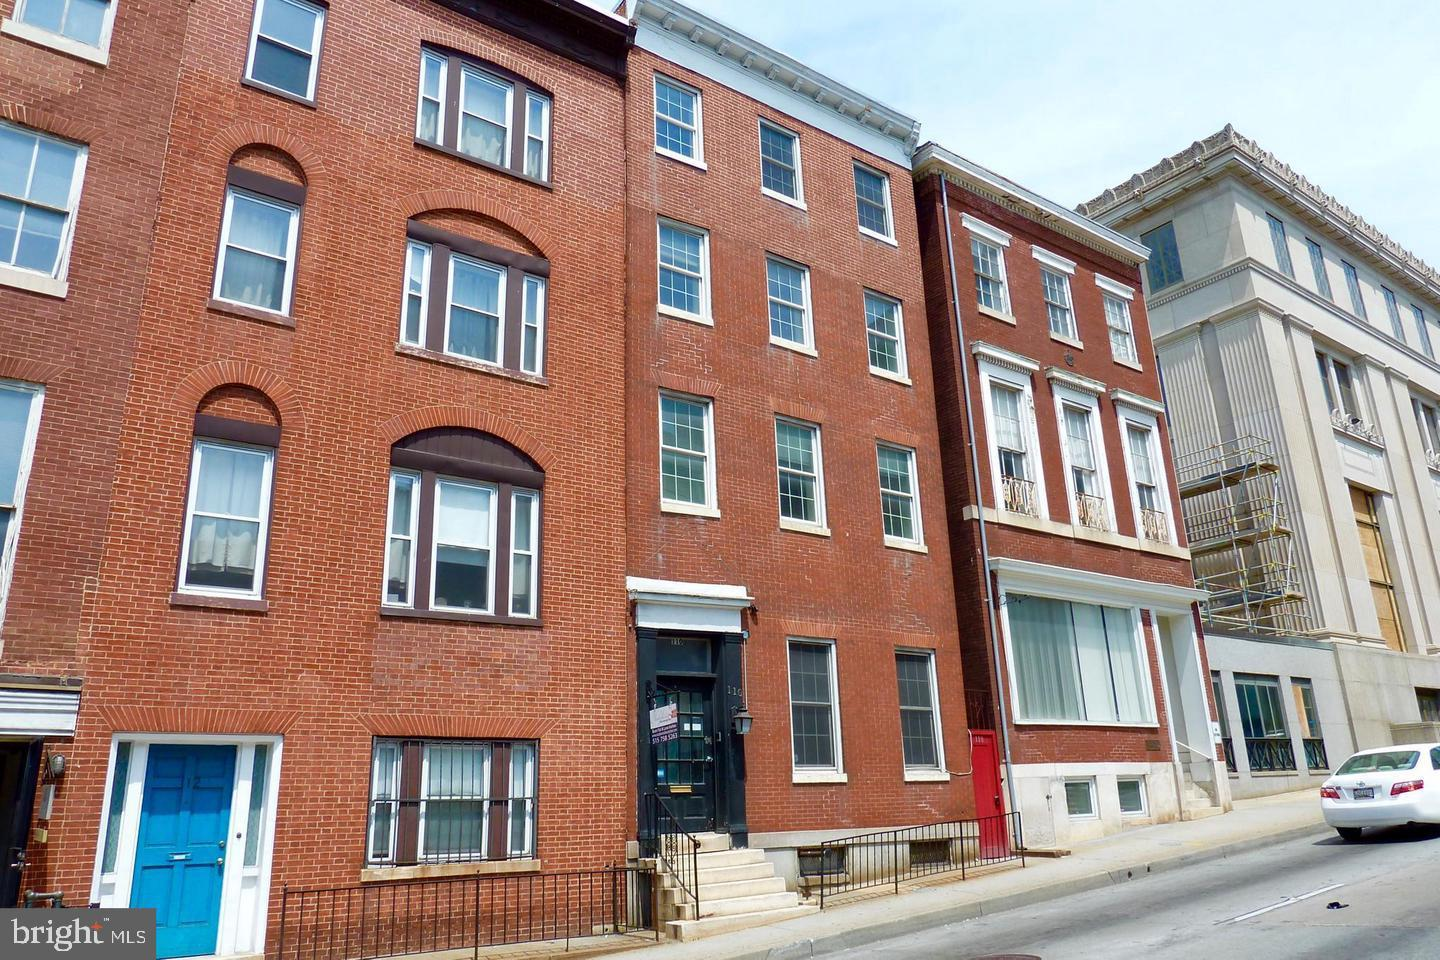 110 W MULBERRY STREET, BALTIMORE, MD 21201